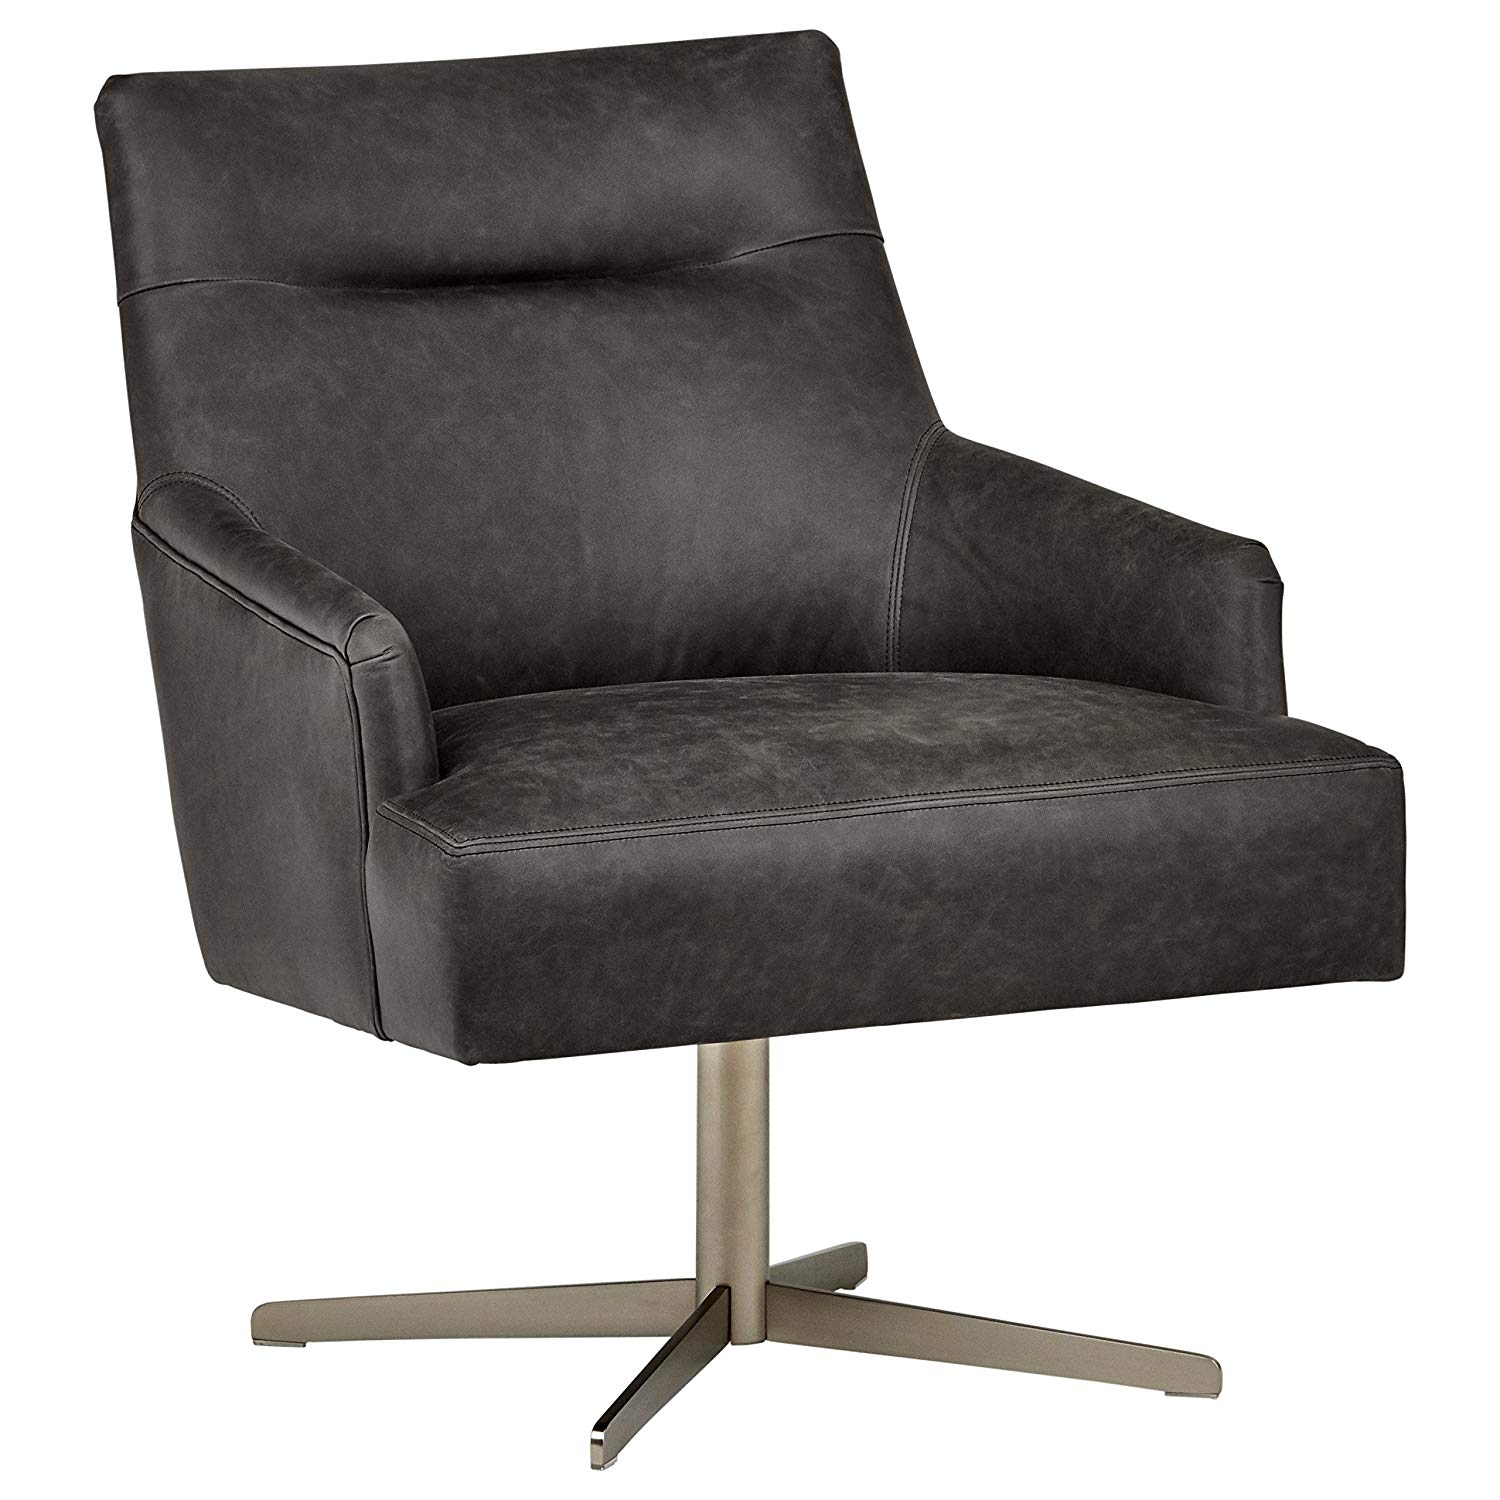 "Rivet zane Mid-Century Modern Swivel Top-Grain Leather Chair, 28.75"" W, Aged Black"